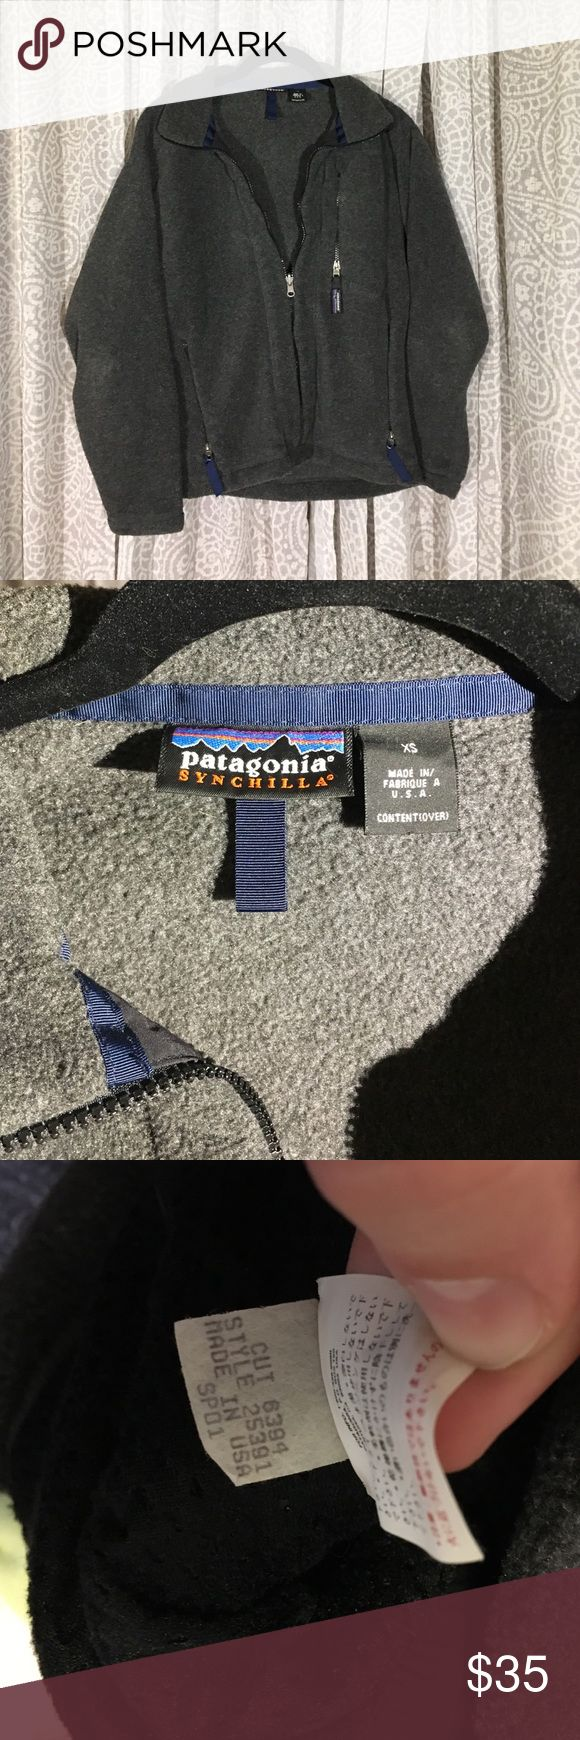 Patagonia Jacket Fleece Men's Patagonia fleece in size XS. Would fit a Women's Medium. Vintage older style. Patagonia Jackets & Coats